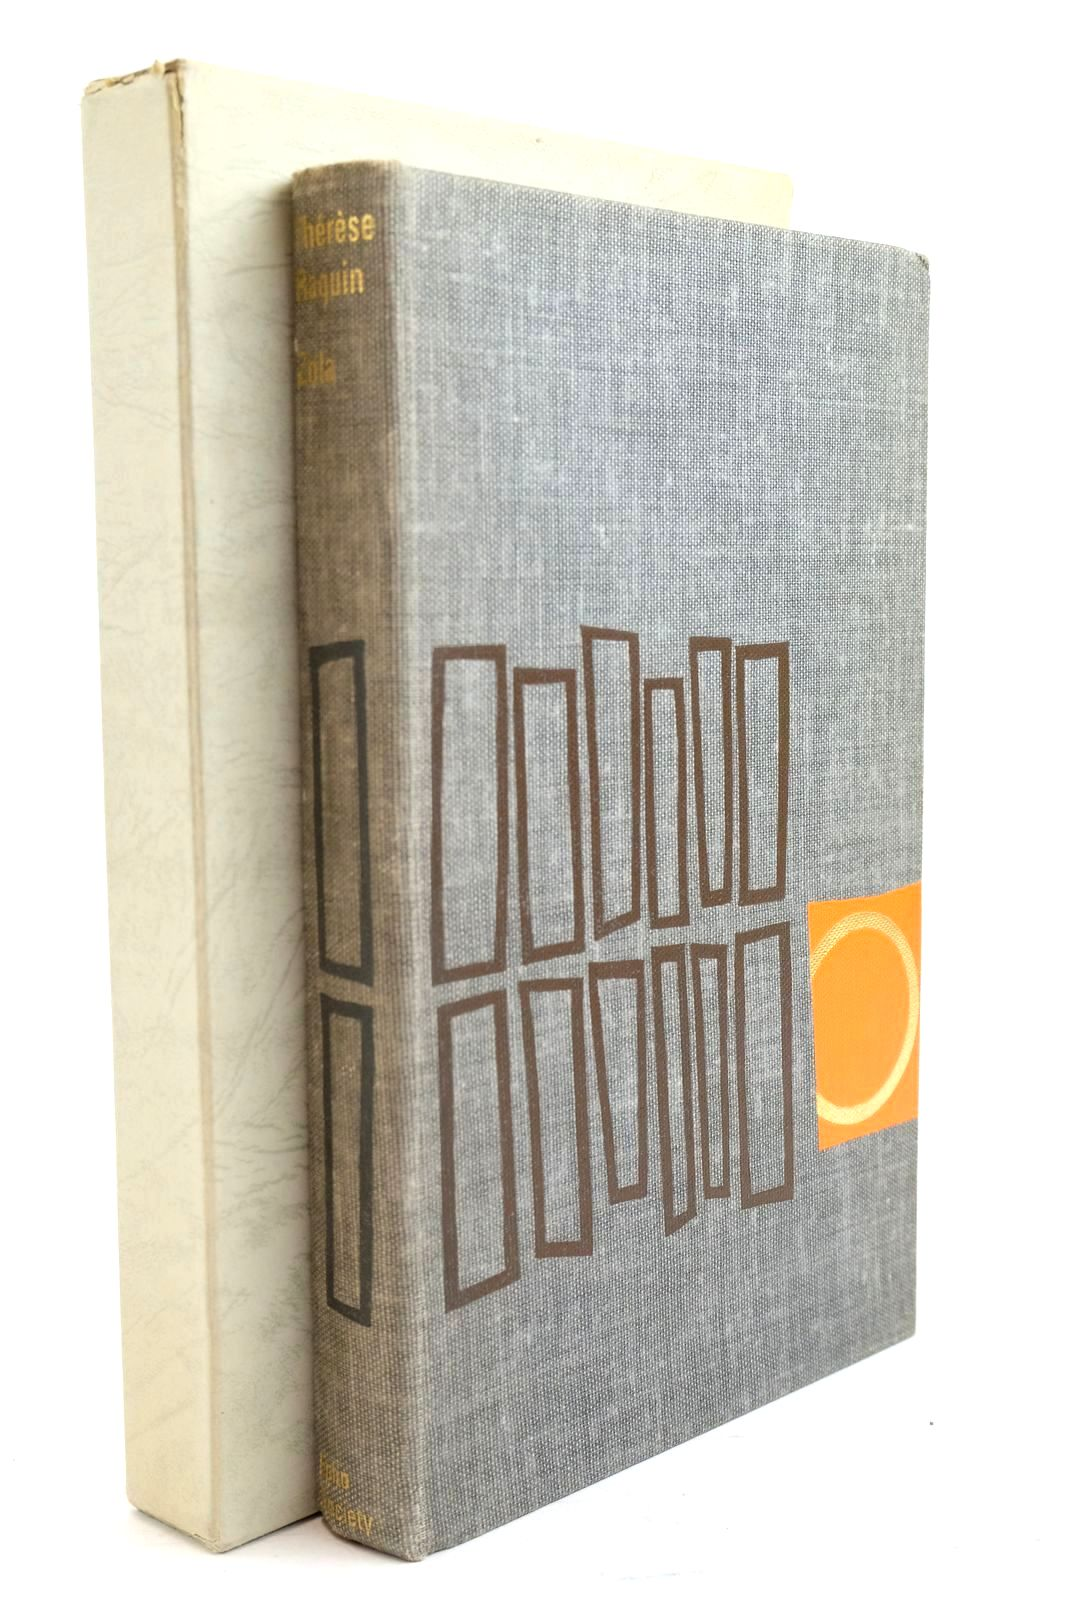 Photo of THERESE RAQUIN written by Zola, Emile Tancock, Leonard illustrated by Kass, Janos published by Folio Society (STOCK CODE: 1320920)  for sale by Stella & Rose's Books